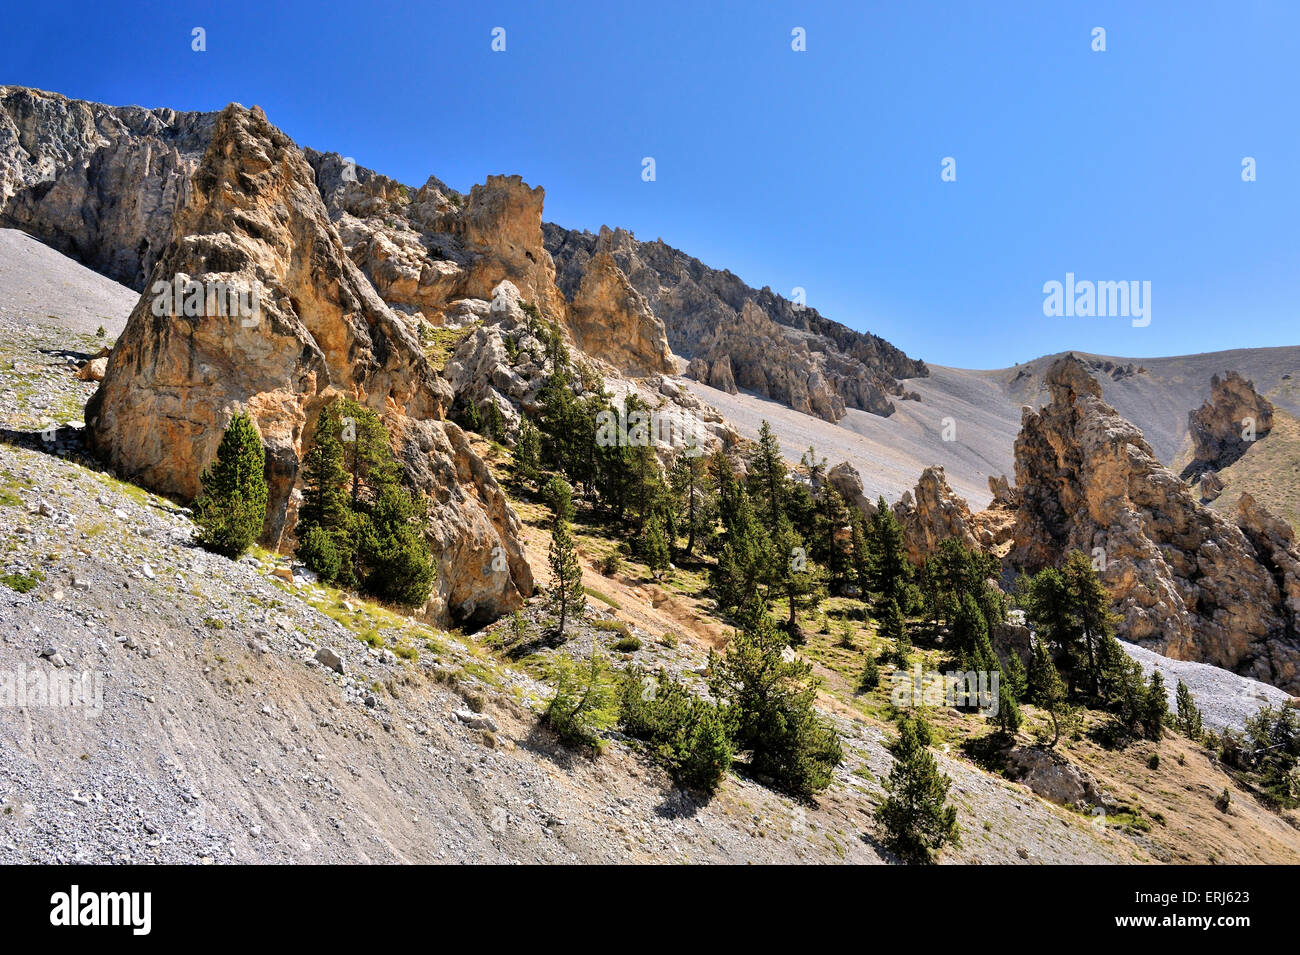 Casse Déserte, desert of stones in the French Alps, Col d'Izoard, French Alps, France - Stock Image